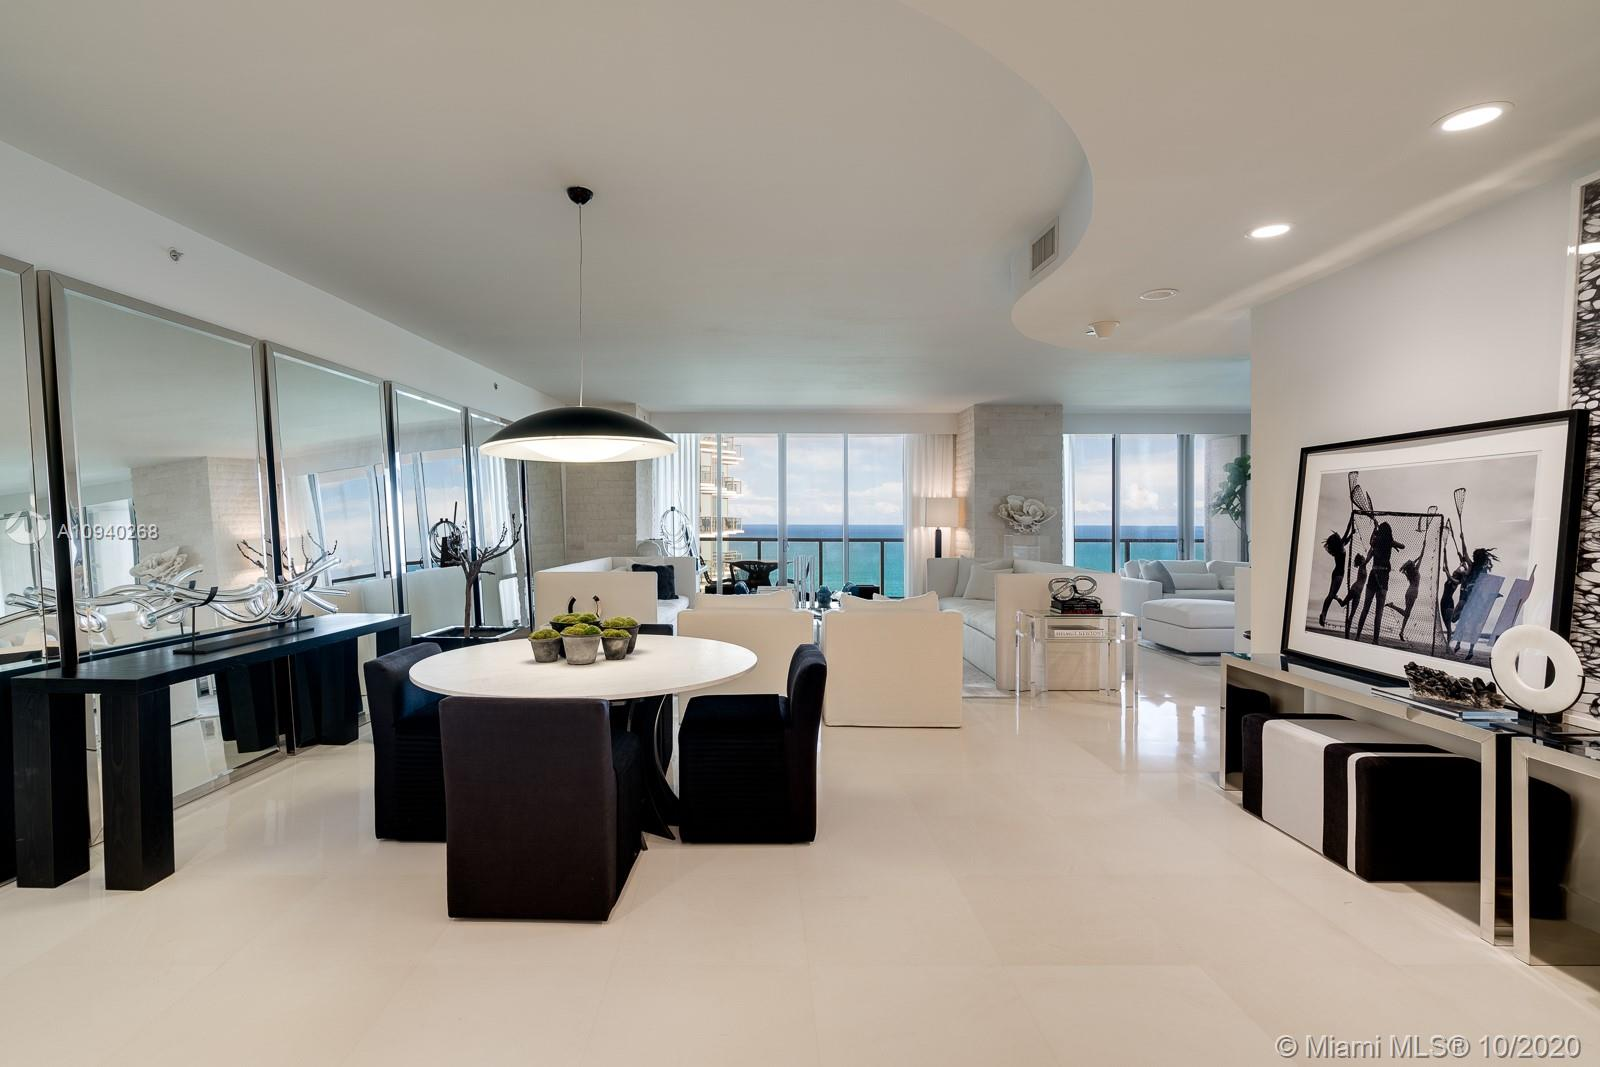 9701 Collins Ave, Unit #1904S Luxury Real Estate